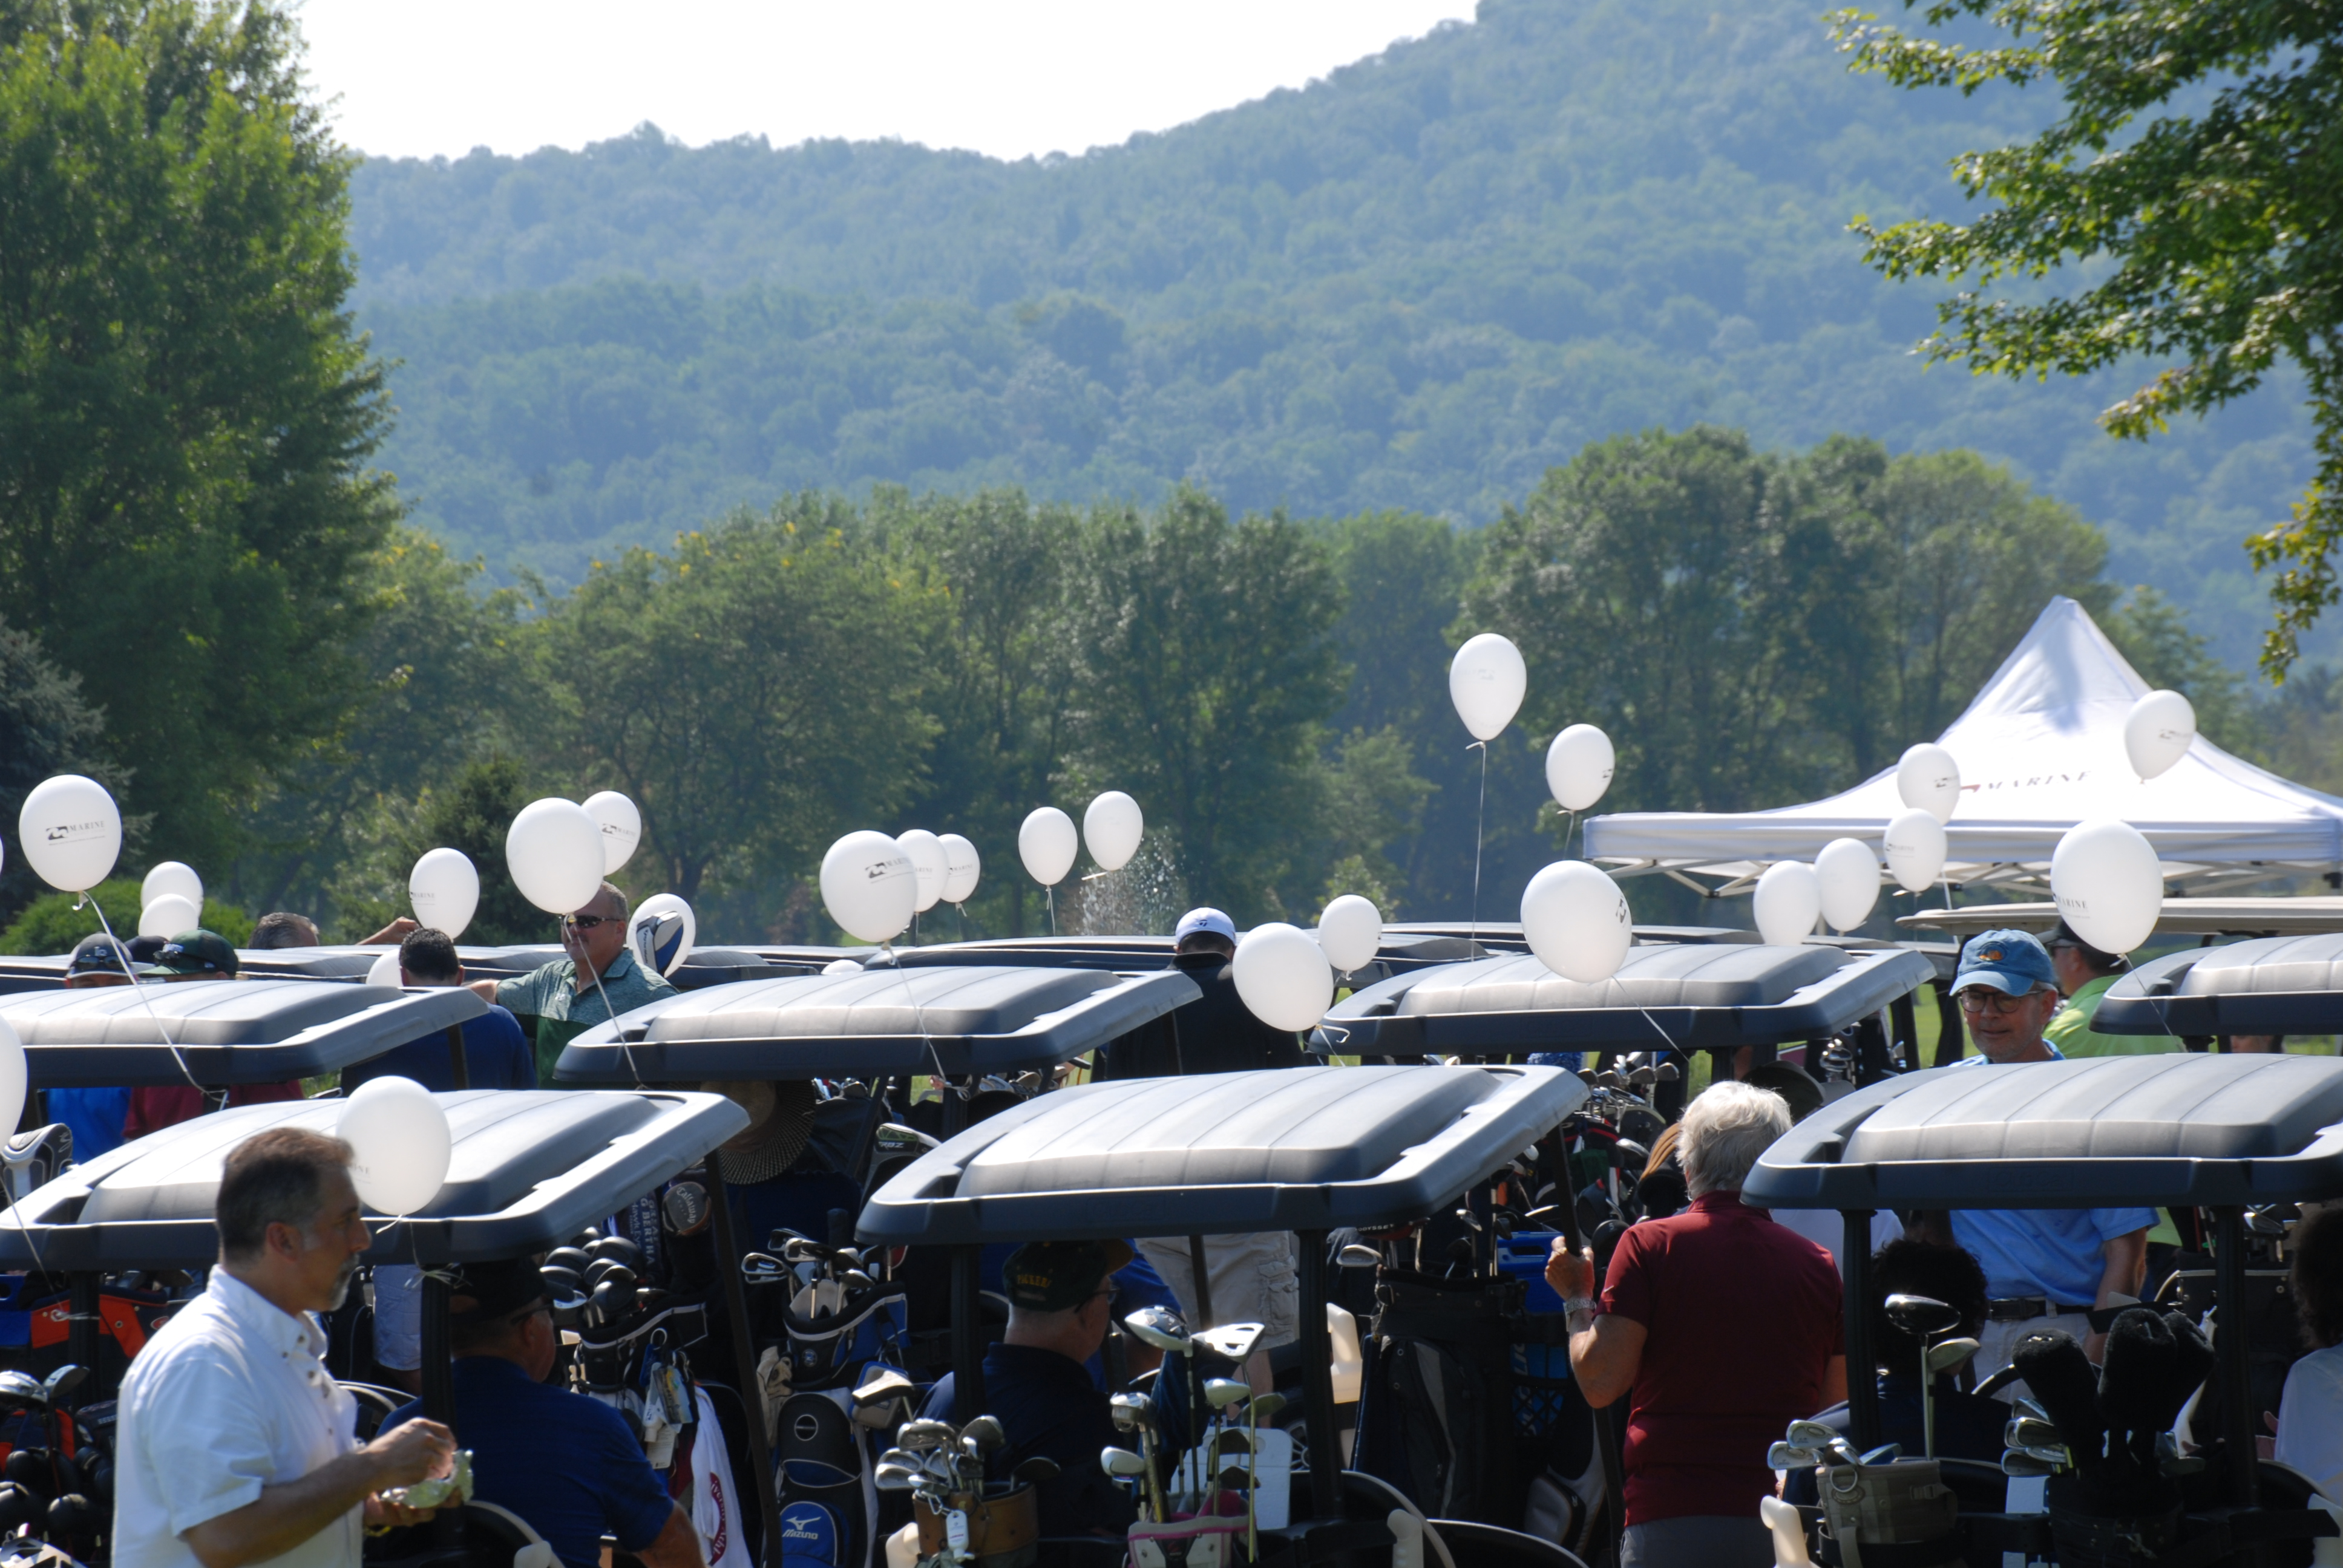 Balloons on golf carts